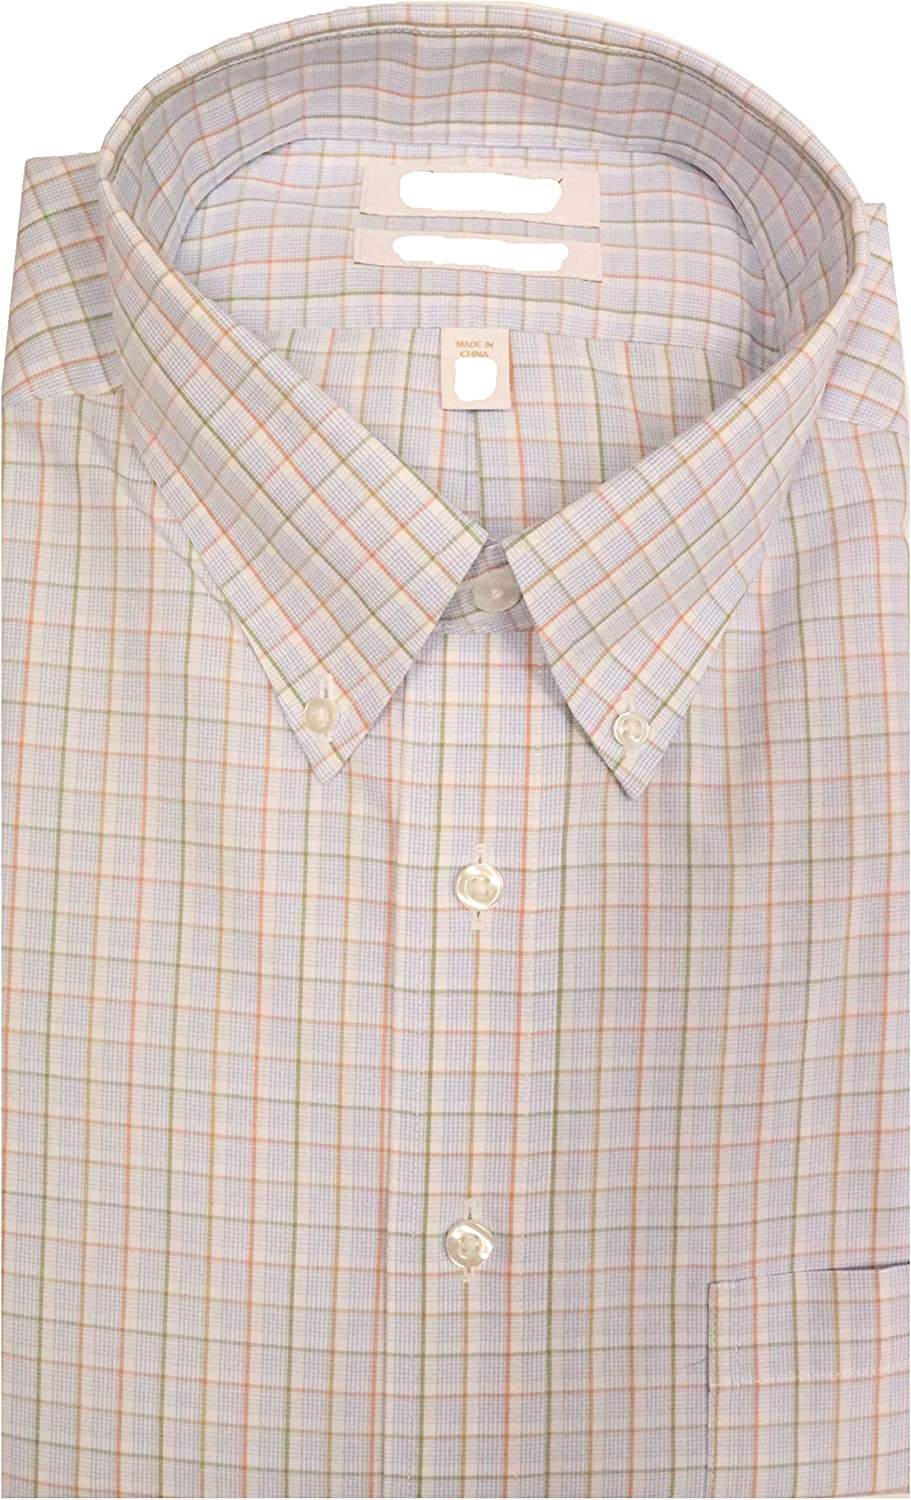 Gold Label Roundtree & Yorke Non-Iron Fitted Button Down Checked Dress Shirt G16A0023 Blue Multi